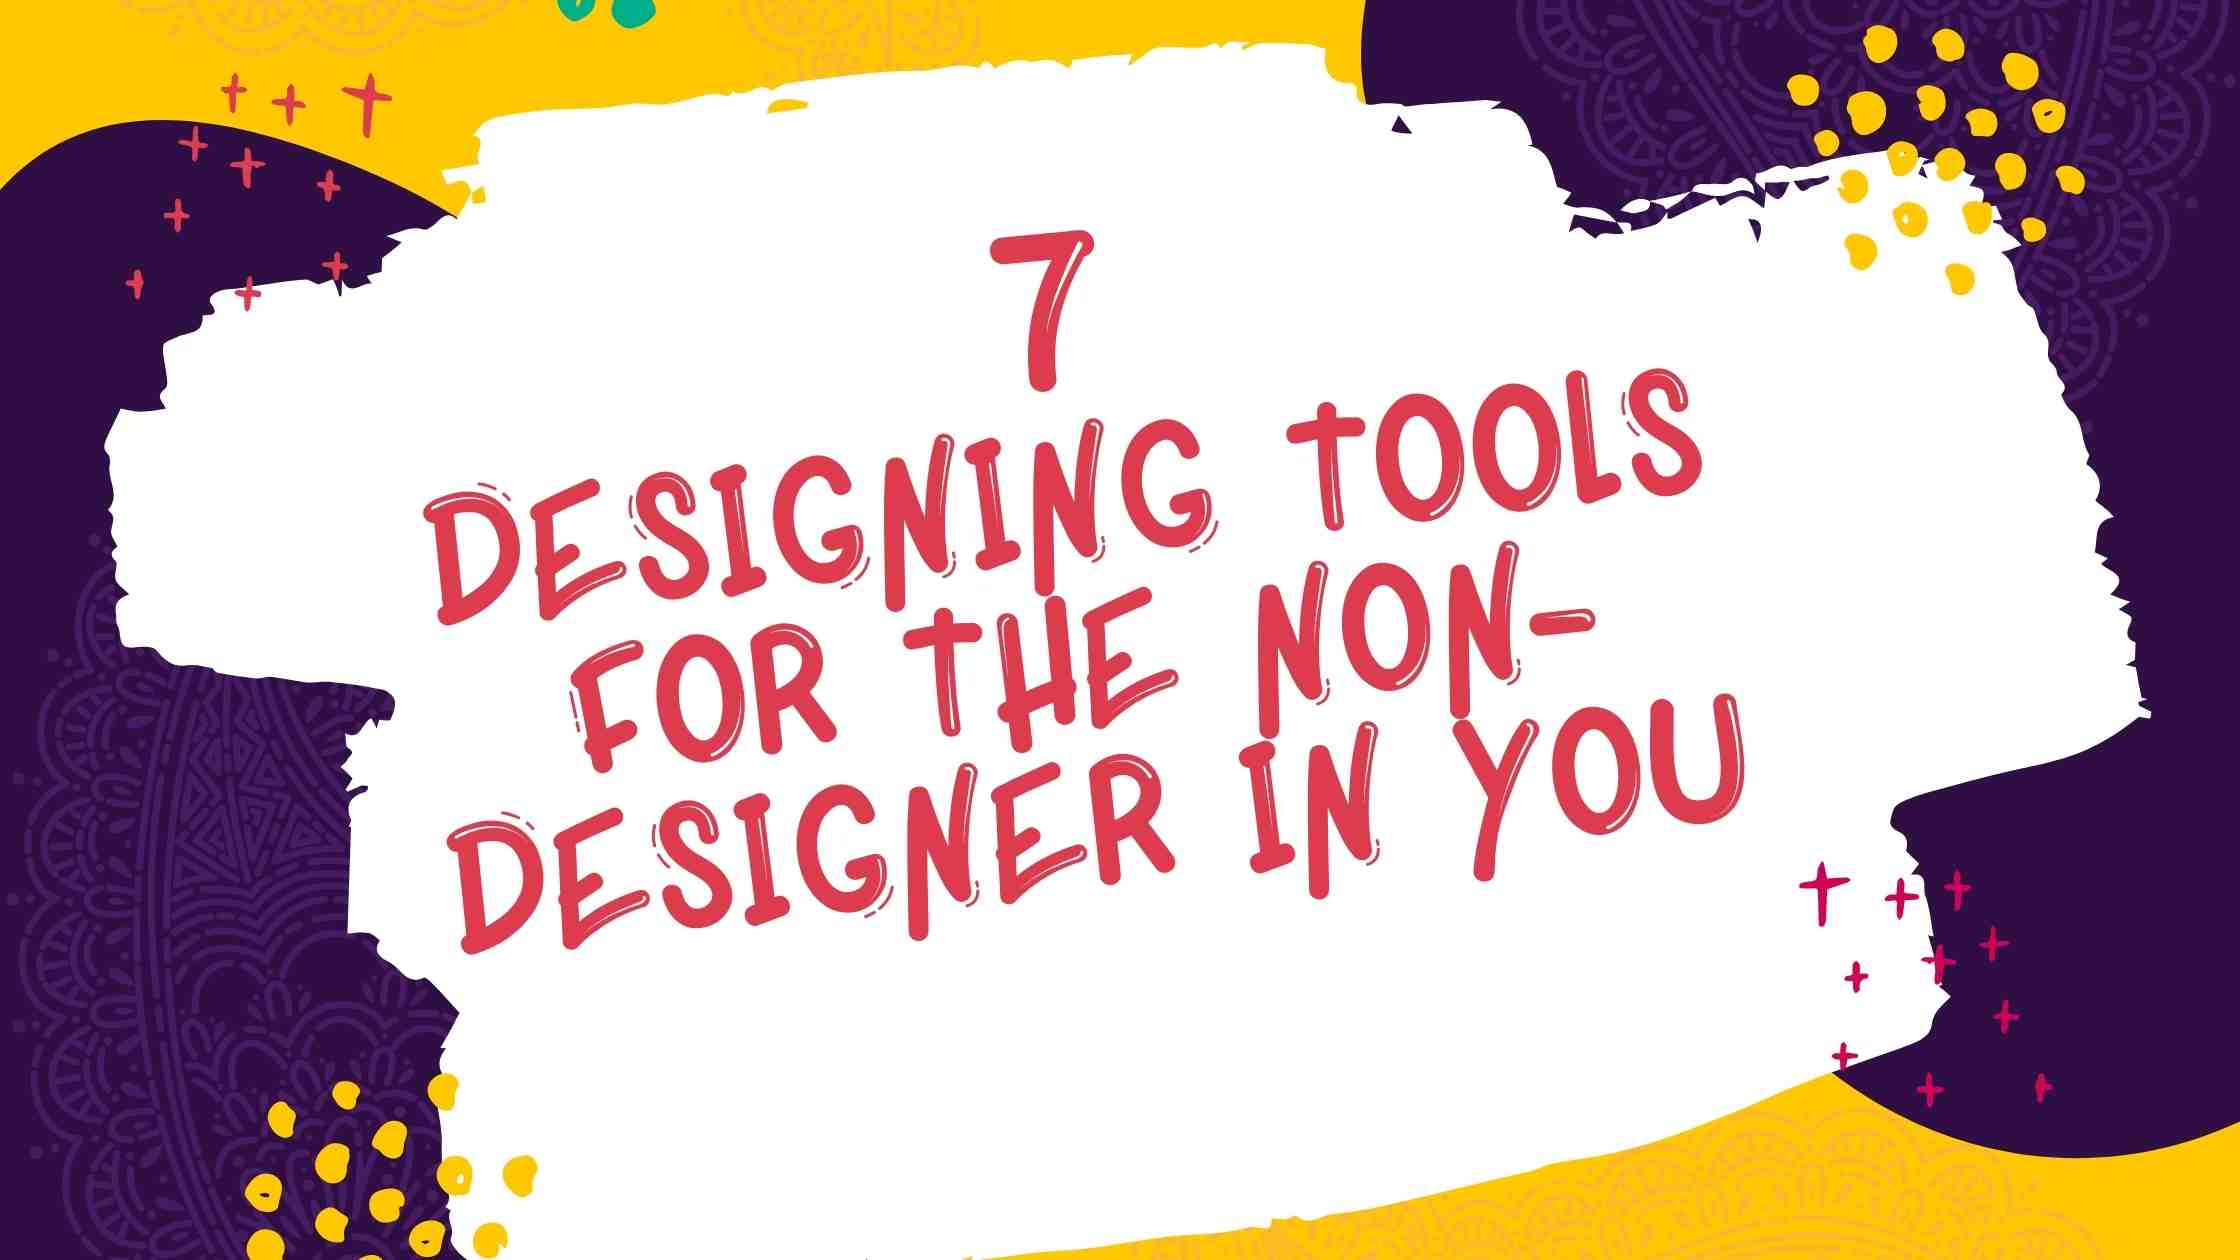 7 Designing tools for the non-designer in you